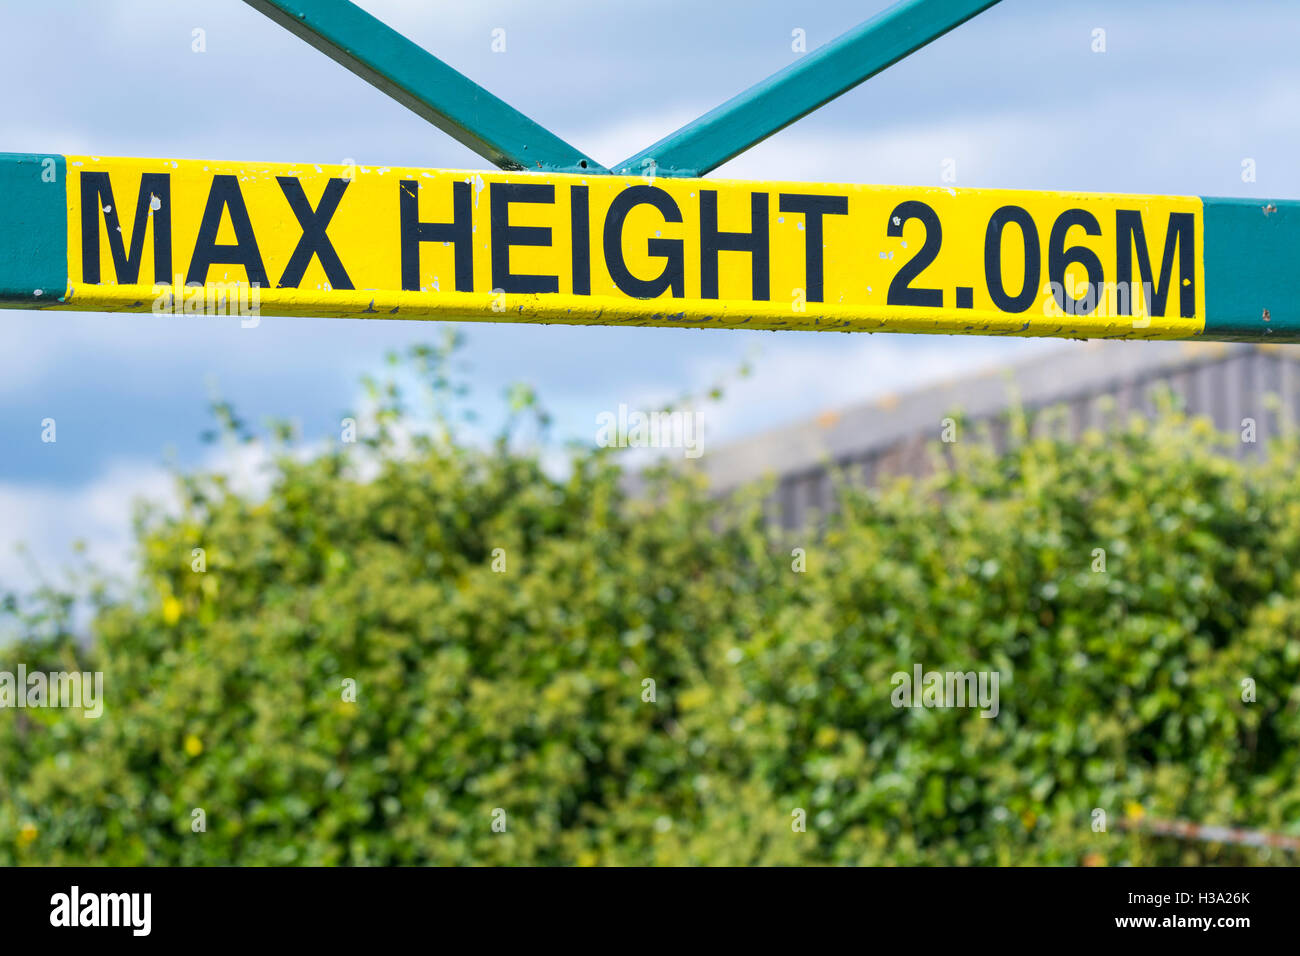 Max Height 2.06M sign. - Stock Image